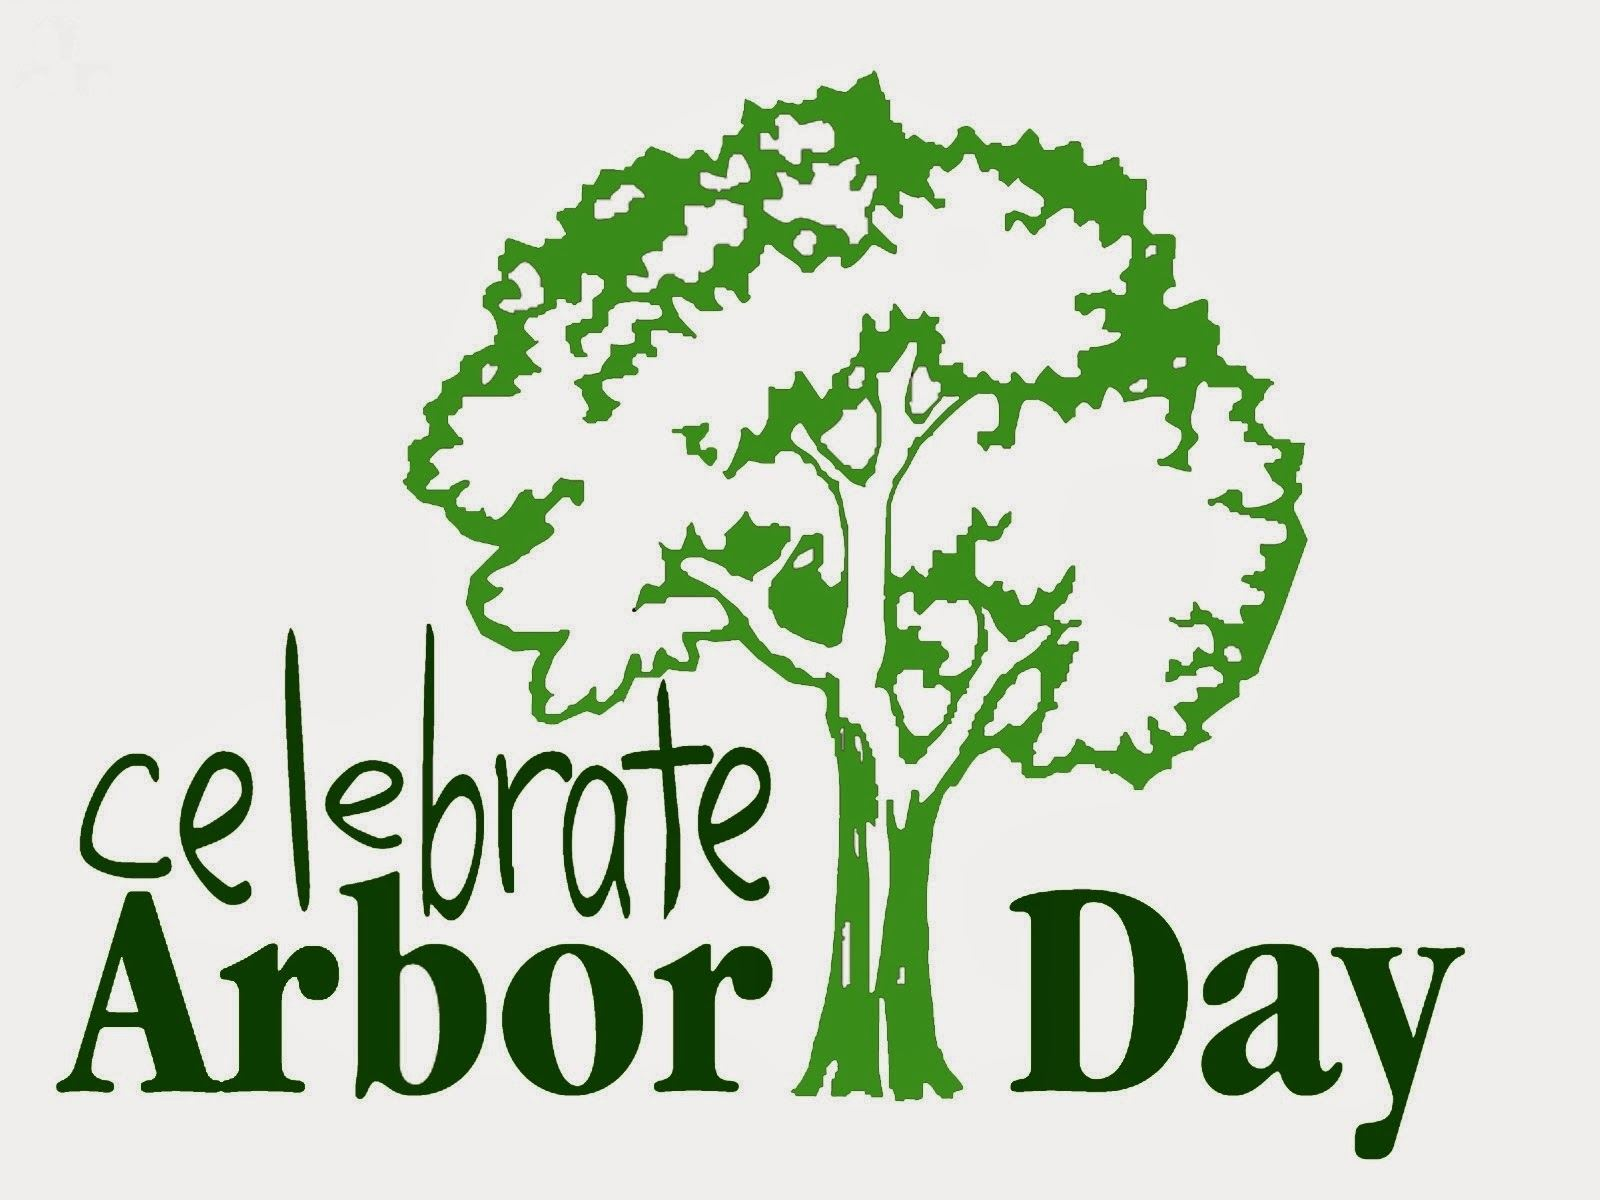 Arbor Day picture